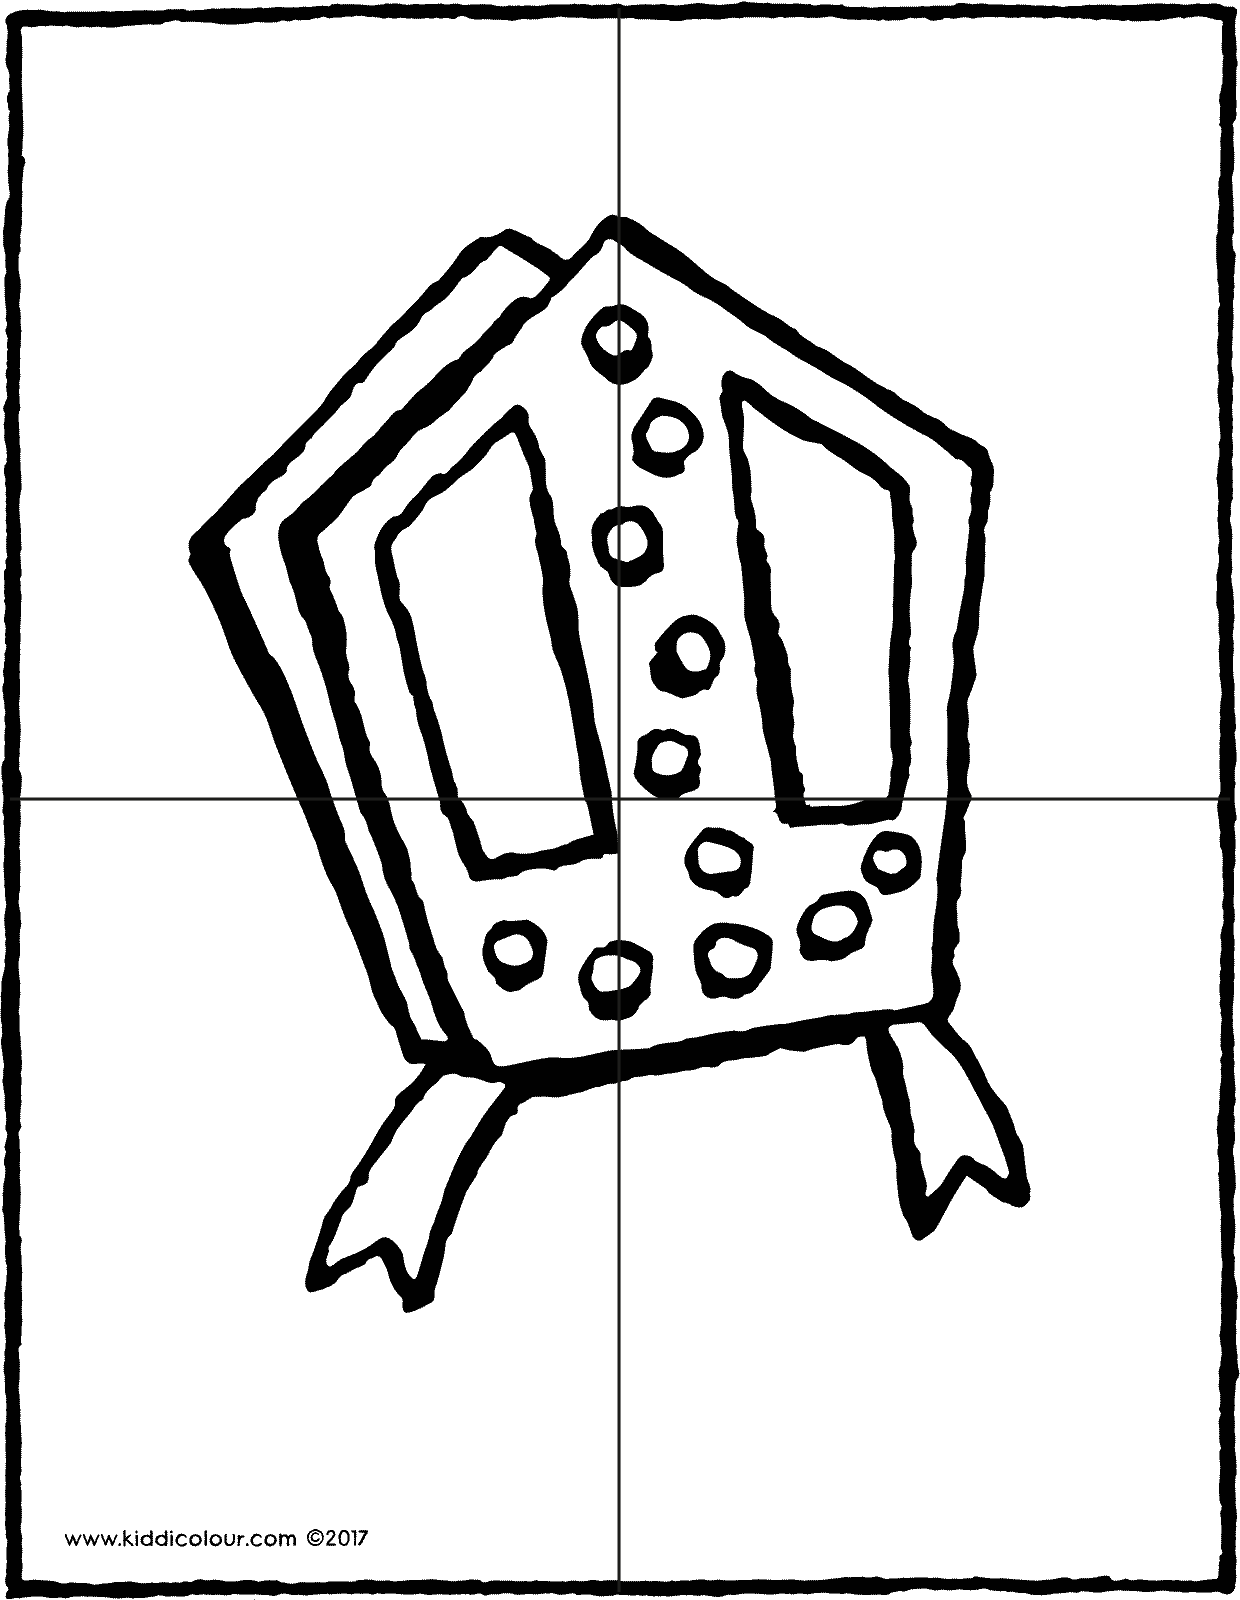 Saint Nicholas' mitre puzzle colouring page drawing picture 01V